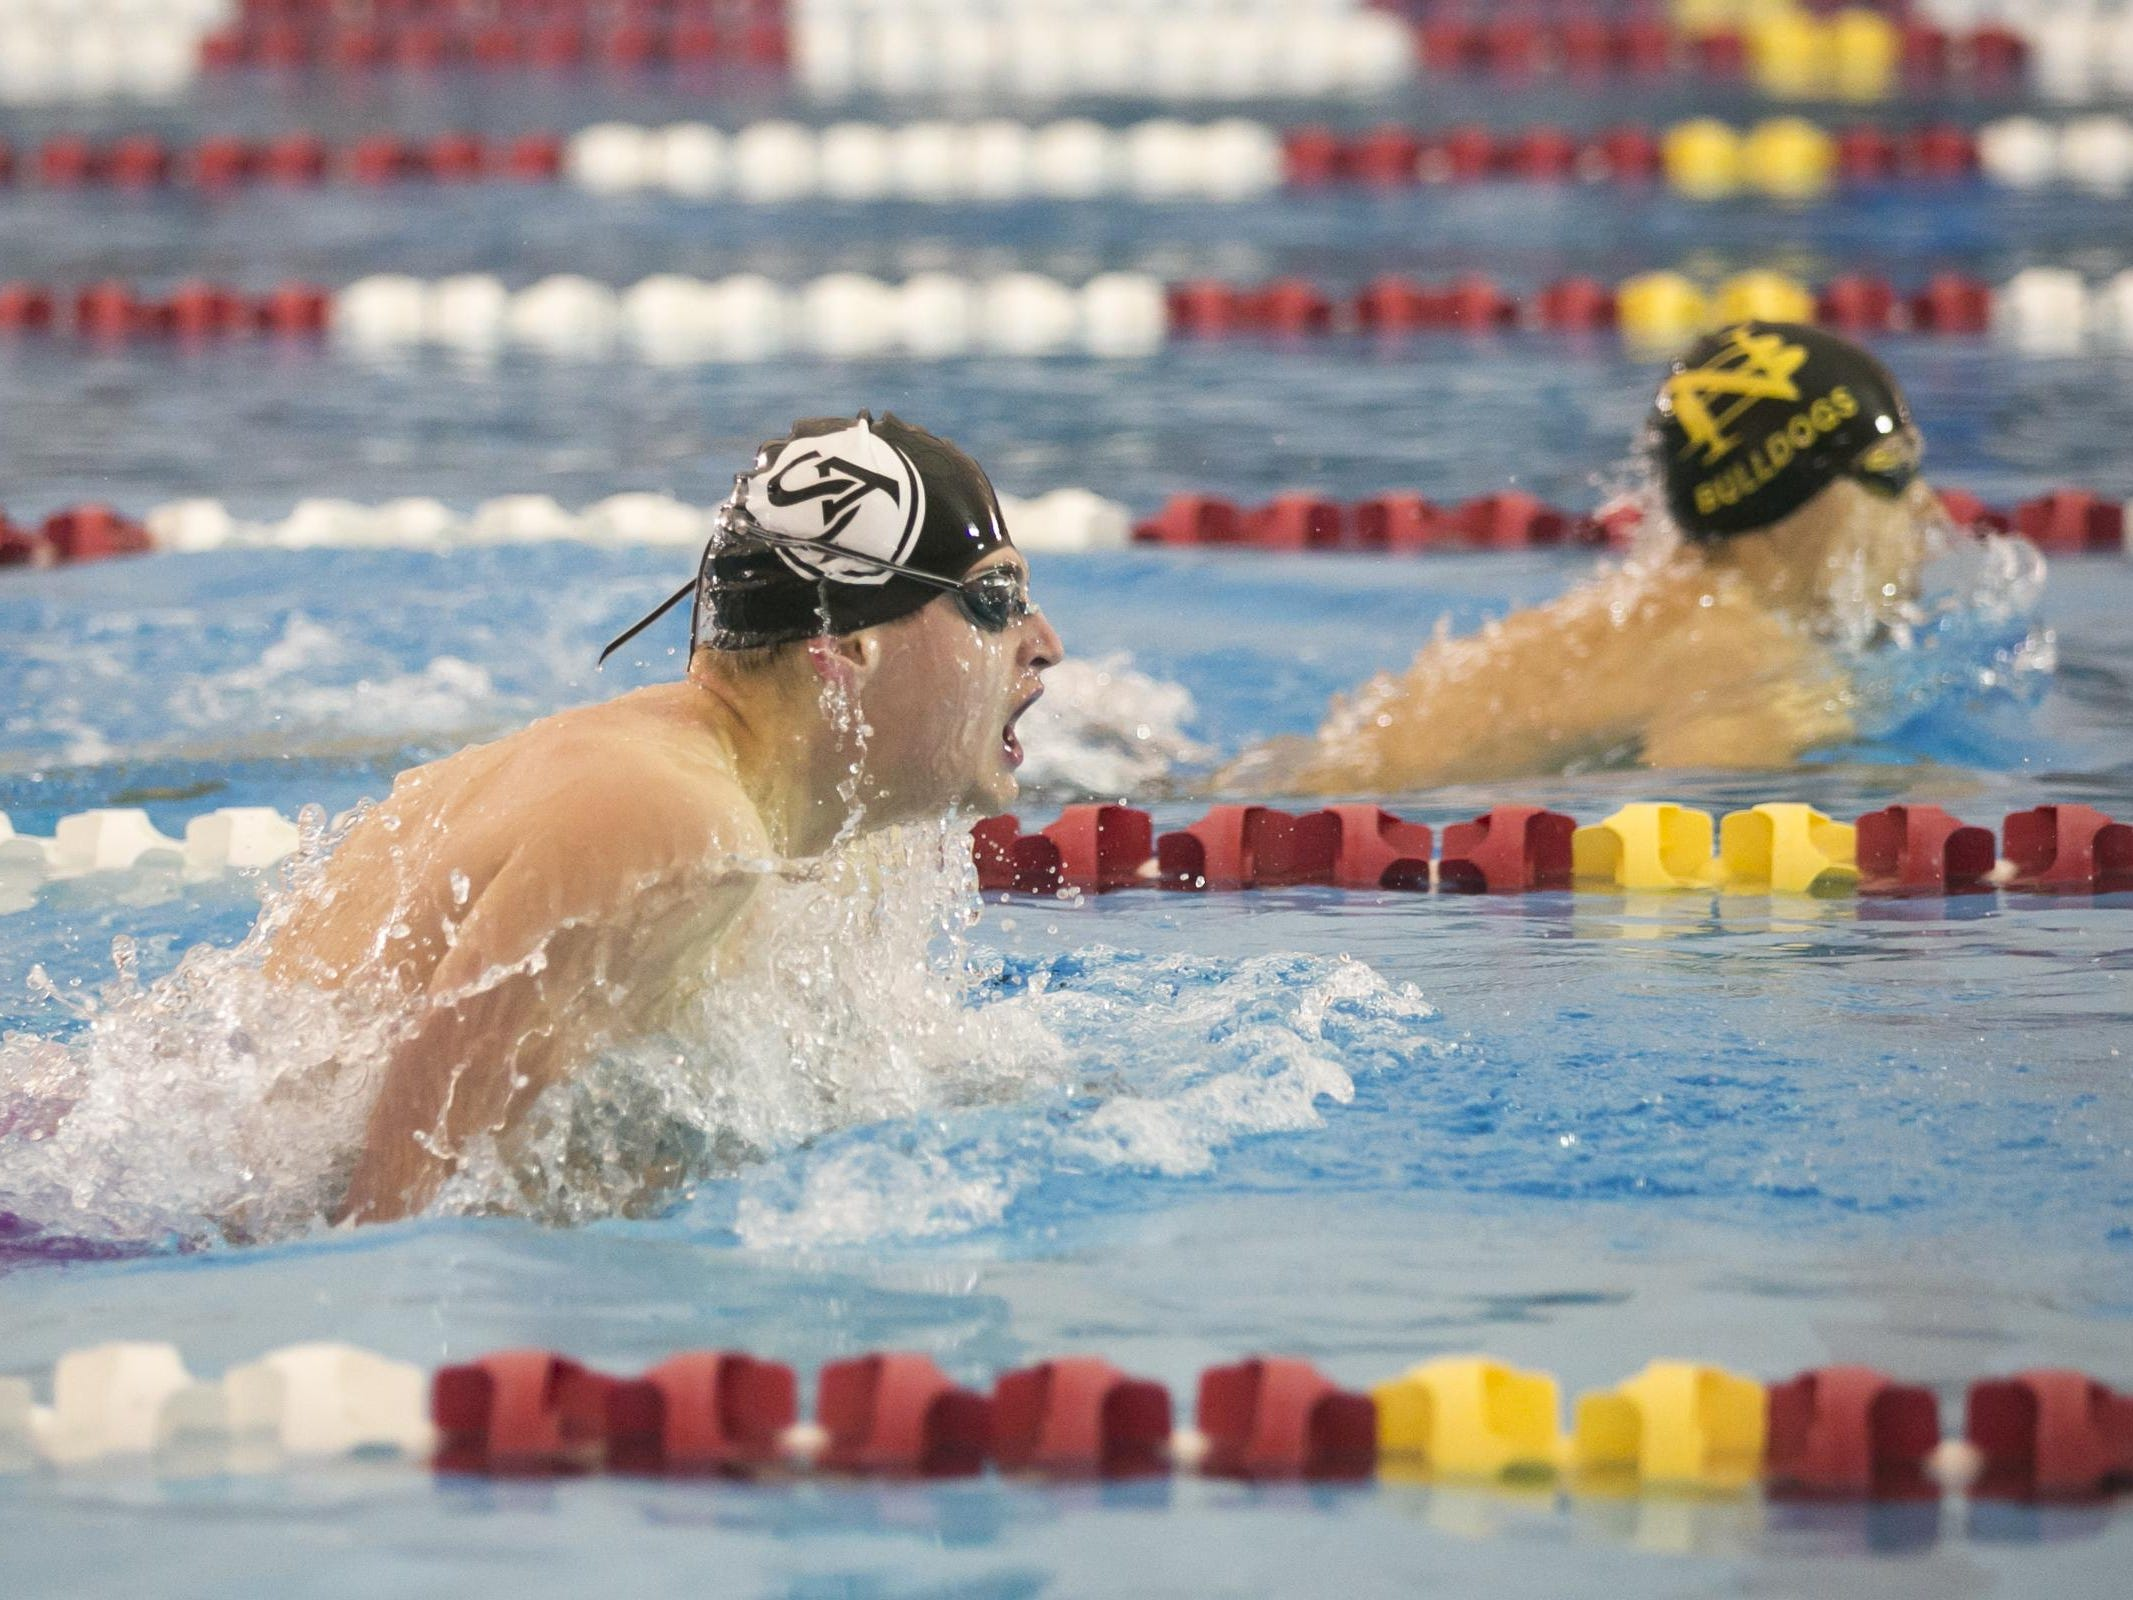 Salem Academy's Ian Shultz swims the boys 100 yard breaststroke at the OSAA Swimming State Championships at Mount Hood Community College on Saturday, Feb. 20, 2016.